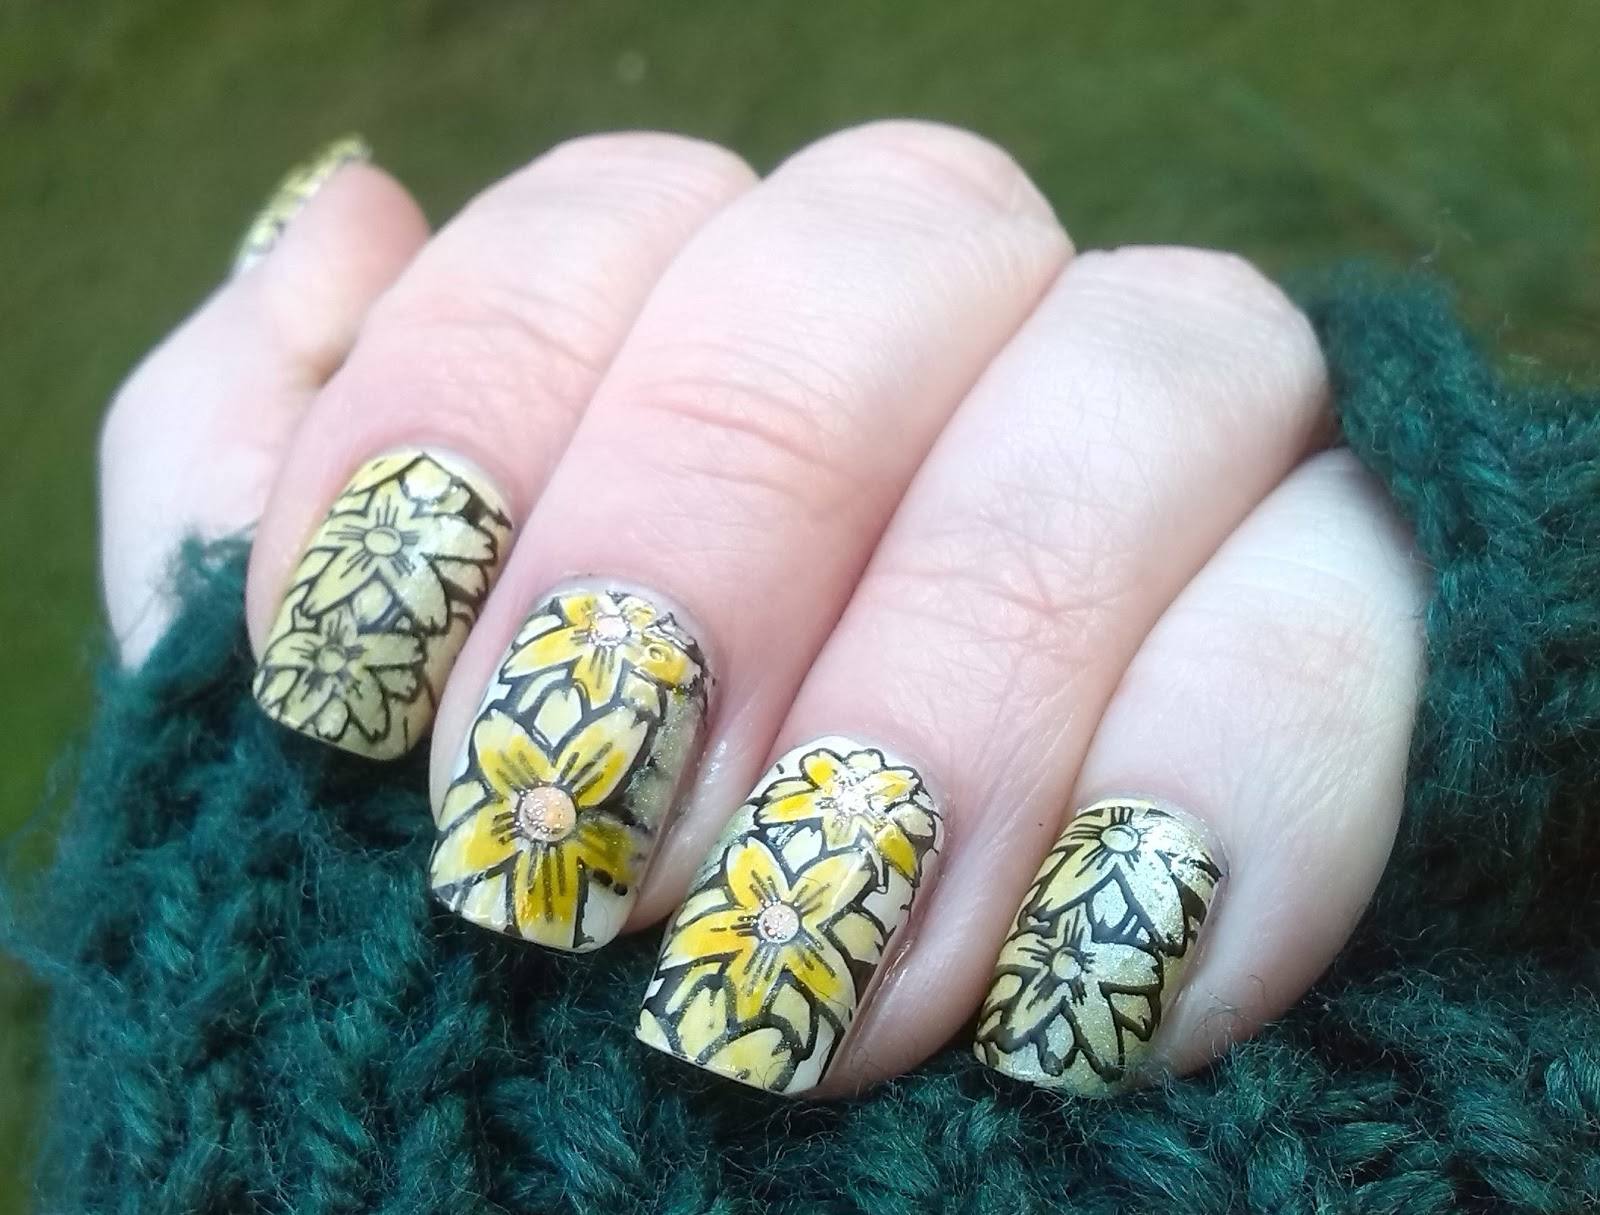 St David's Day mani with Pueen SE01B and TarasTalons Holo Sunshine